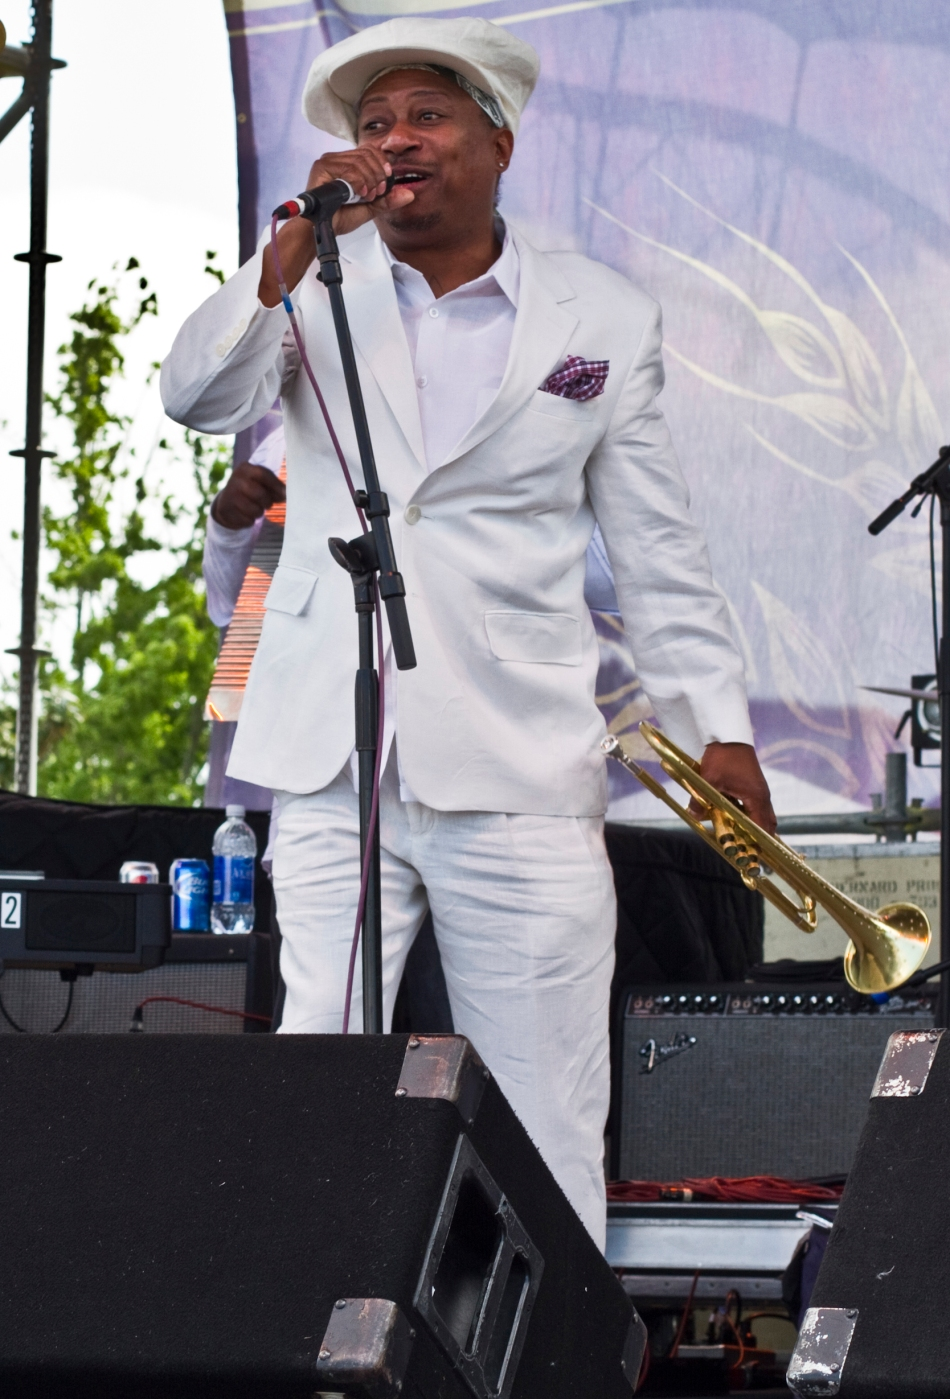 Kermit Ruffins performing at French Quarter Fest in New Orleans, LA on April 13, 2013